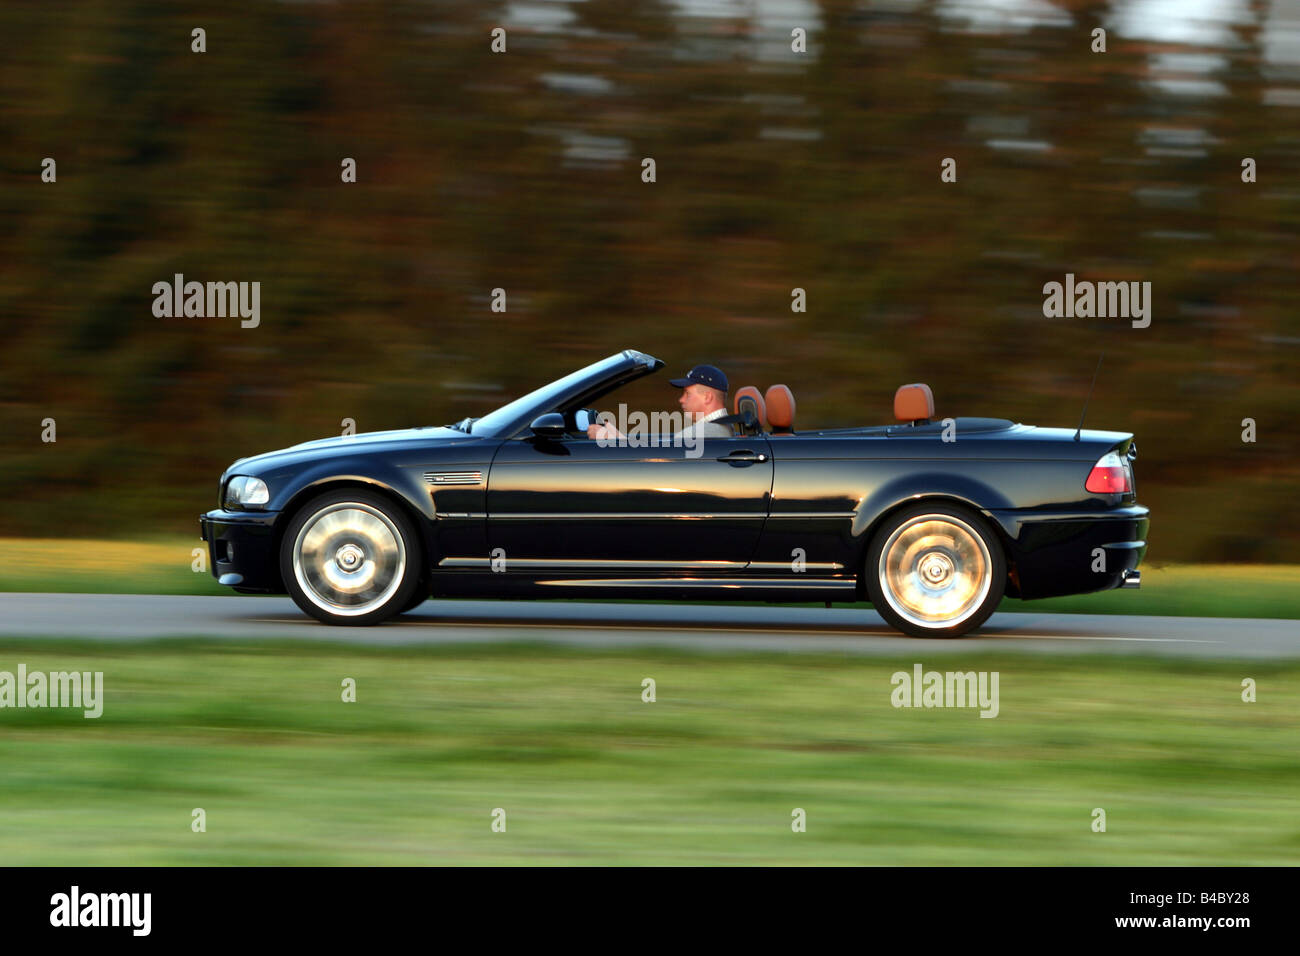 Car Bmw M3 Convertible Model Stock Photos Car Bmw M3 Convertible